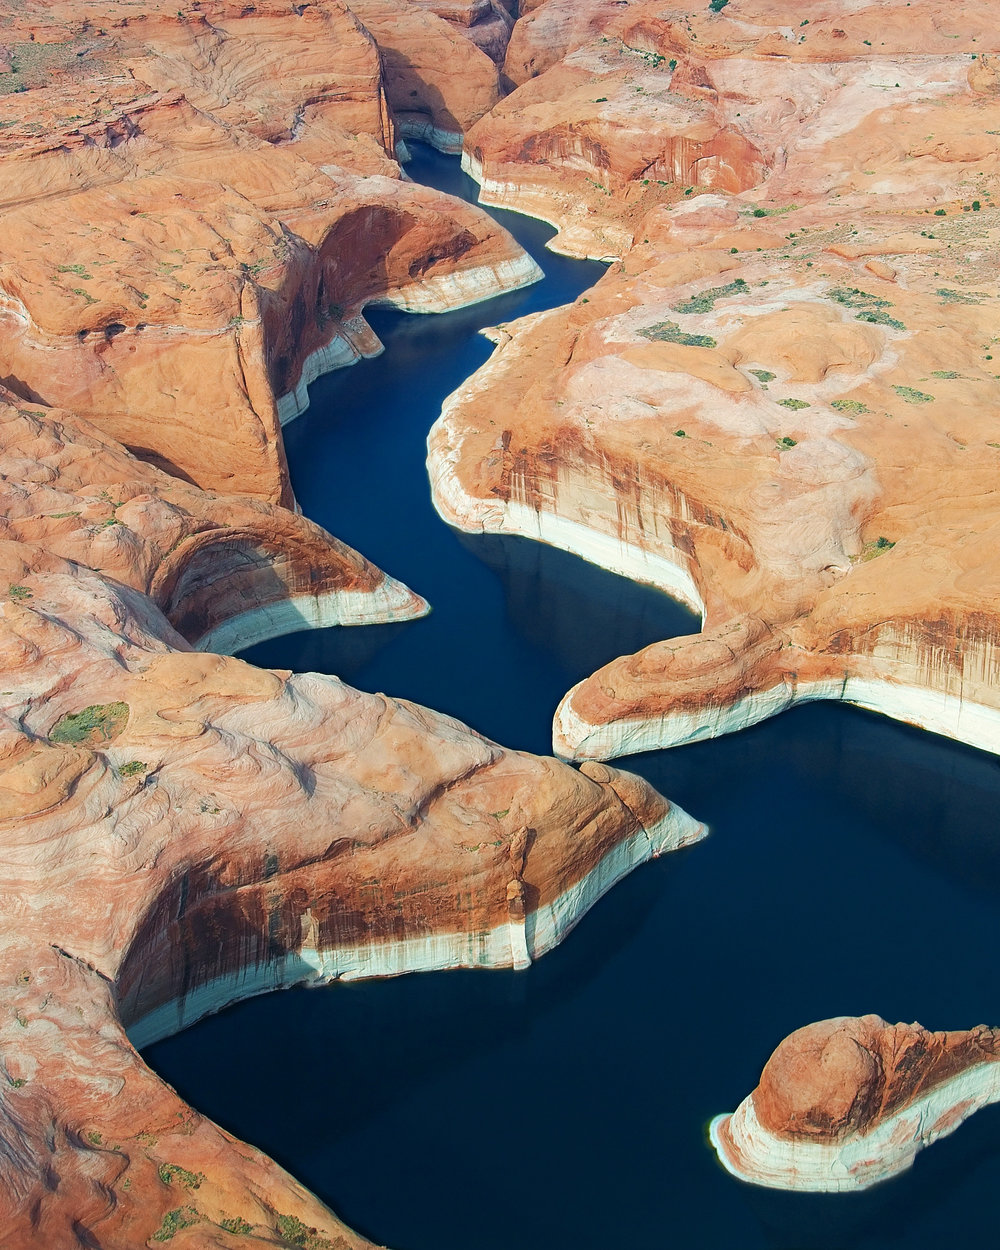 """Lake Powell is a reservoir on the Colorado River, straddling the border between Utah and Arizona, USA. Behind Lake Mead, it is the second largest man-made reservoir by volume in the country, capable of storing 7.9 trillion gallons (29.9 trillion liters) of water when full. Water levels on the Colorado River have been below average since 2000, made evident by the light-colored layer of rock just above Lake Powell's surface.  37°04'21.8""""N 111°13'55.0""""W  Source imagery: Rainer Krienke"""